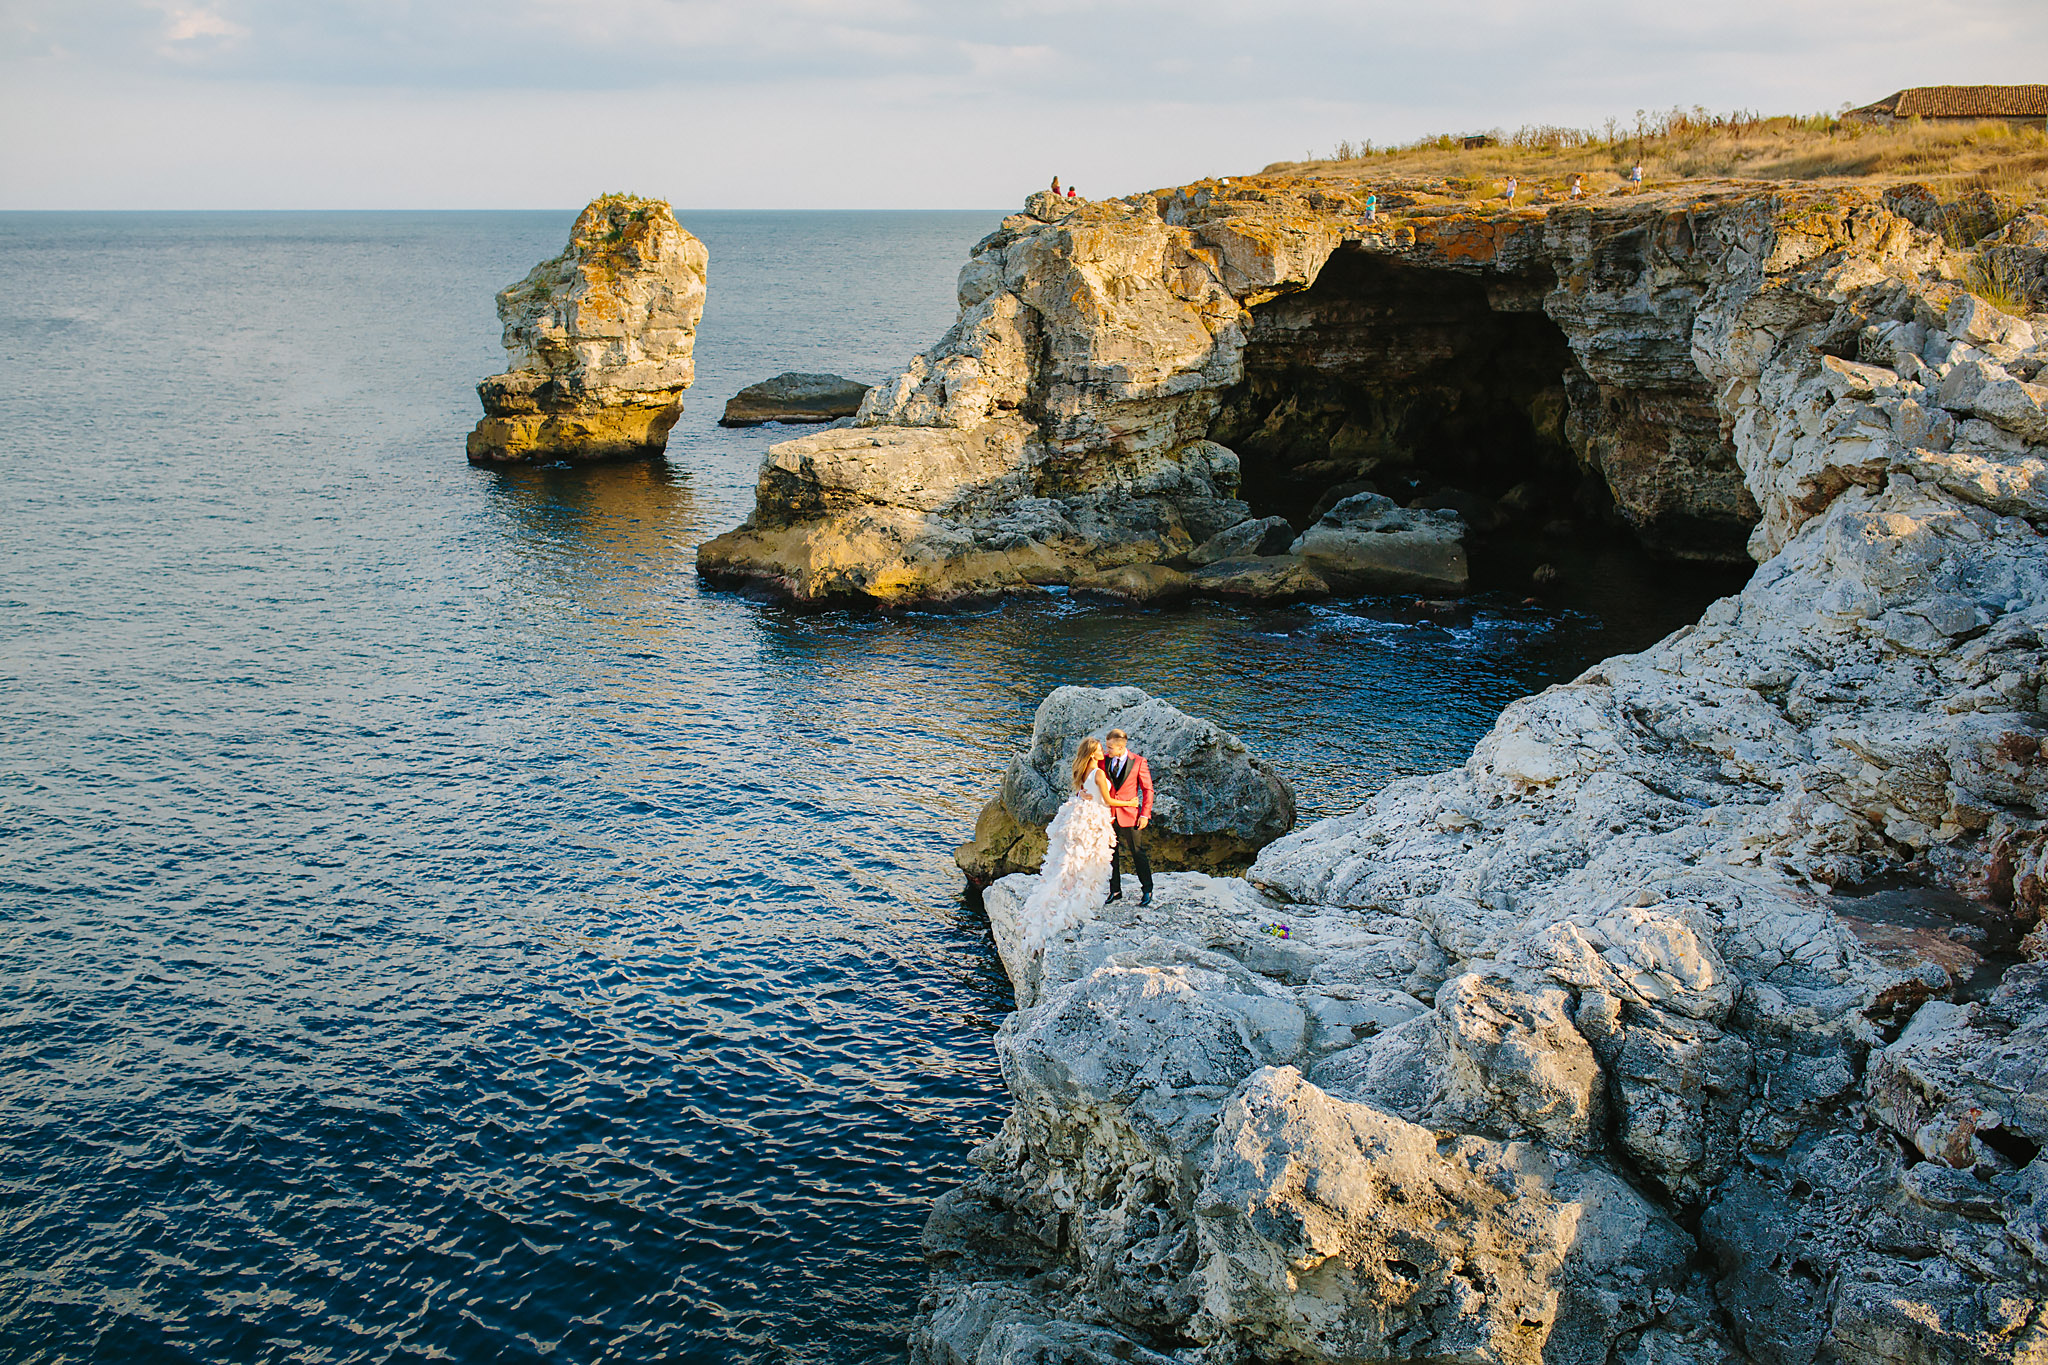 Trash the dress cu Ana și Adrian în Tyulenovo